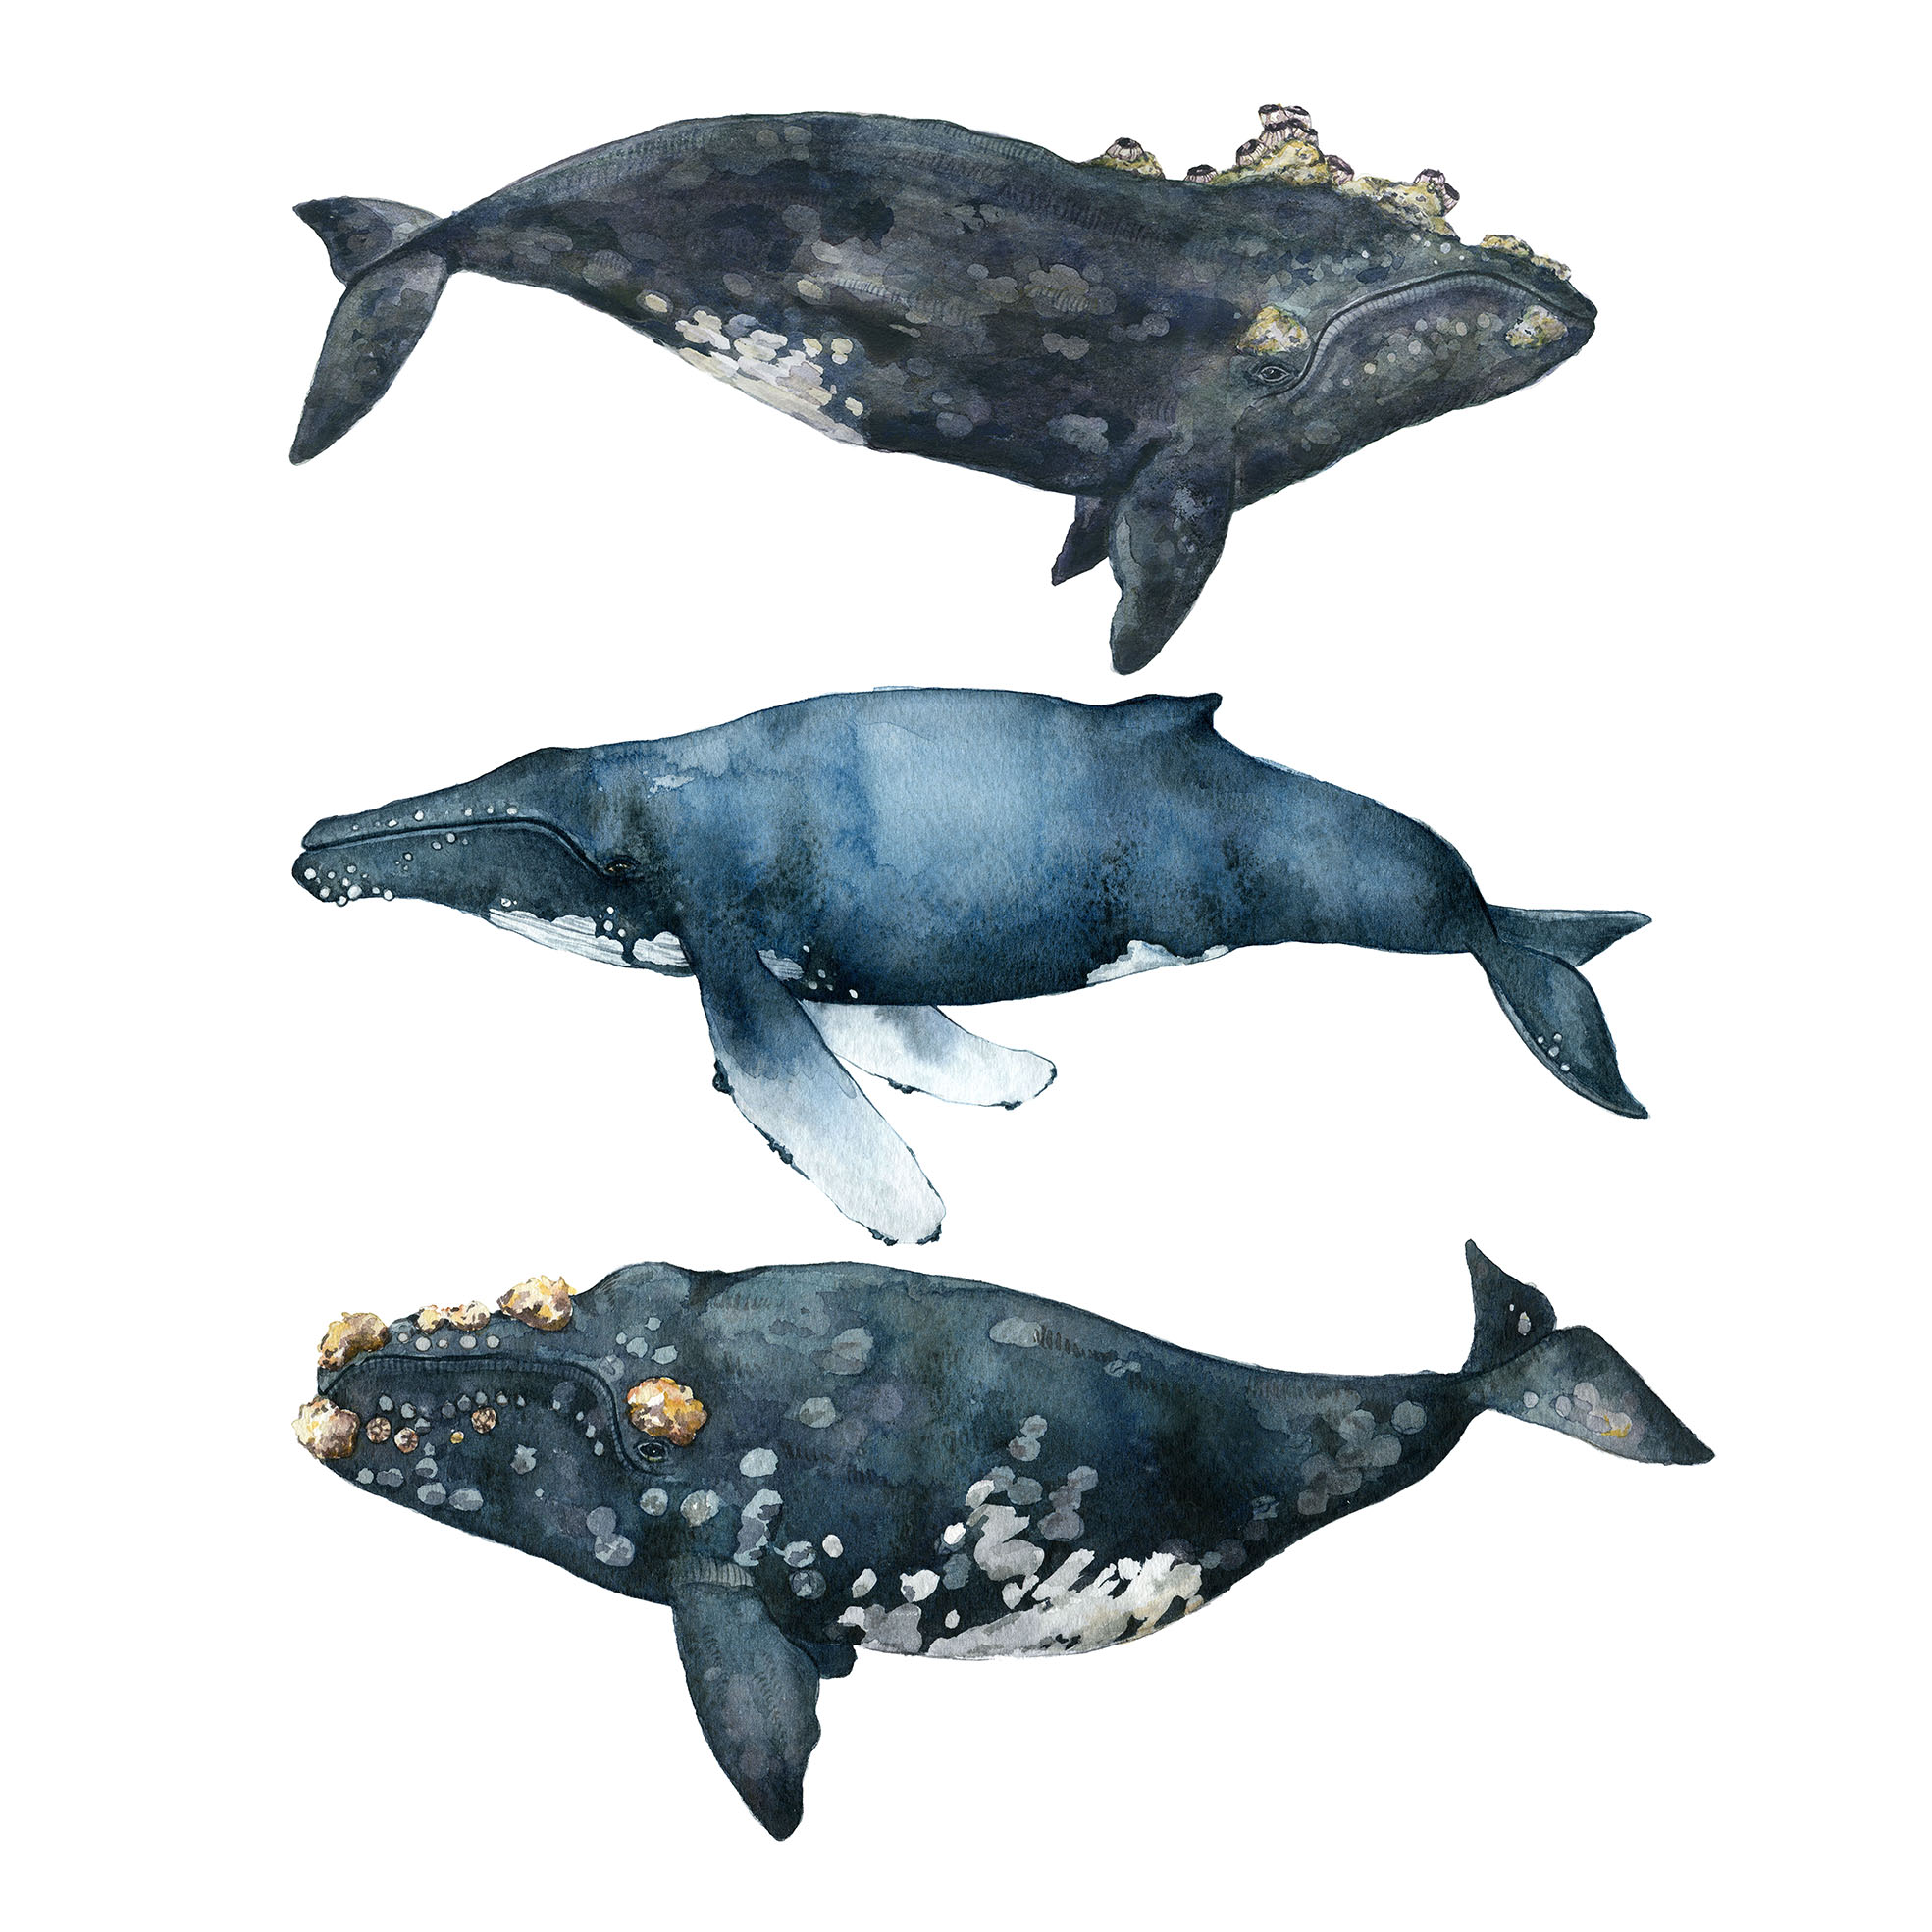 The Three Whales